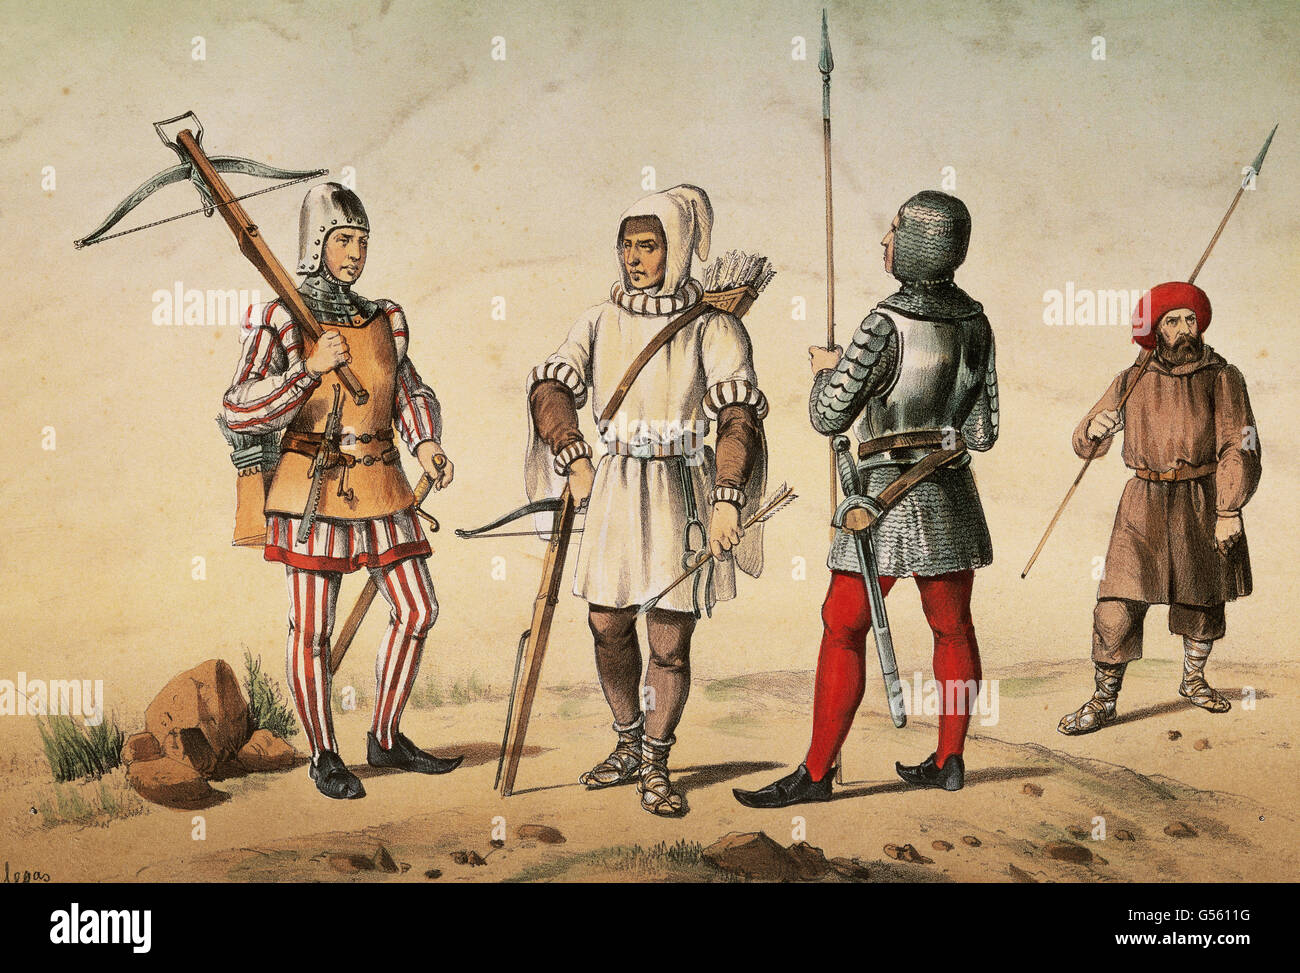 Spanish warriors. Middle Ages. 15th century. Armed retinue's crossbowmen of city and mountains of Leon and armed - Stock Image